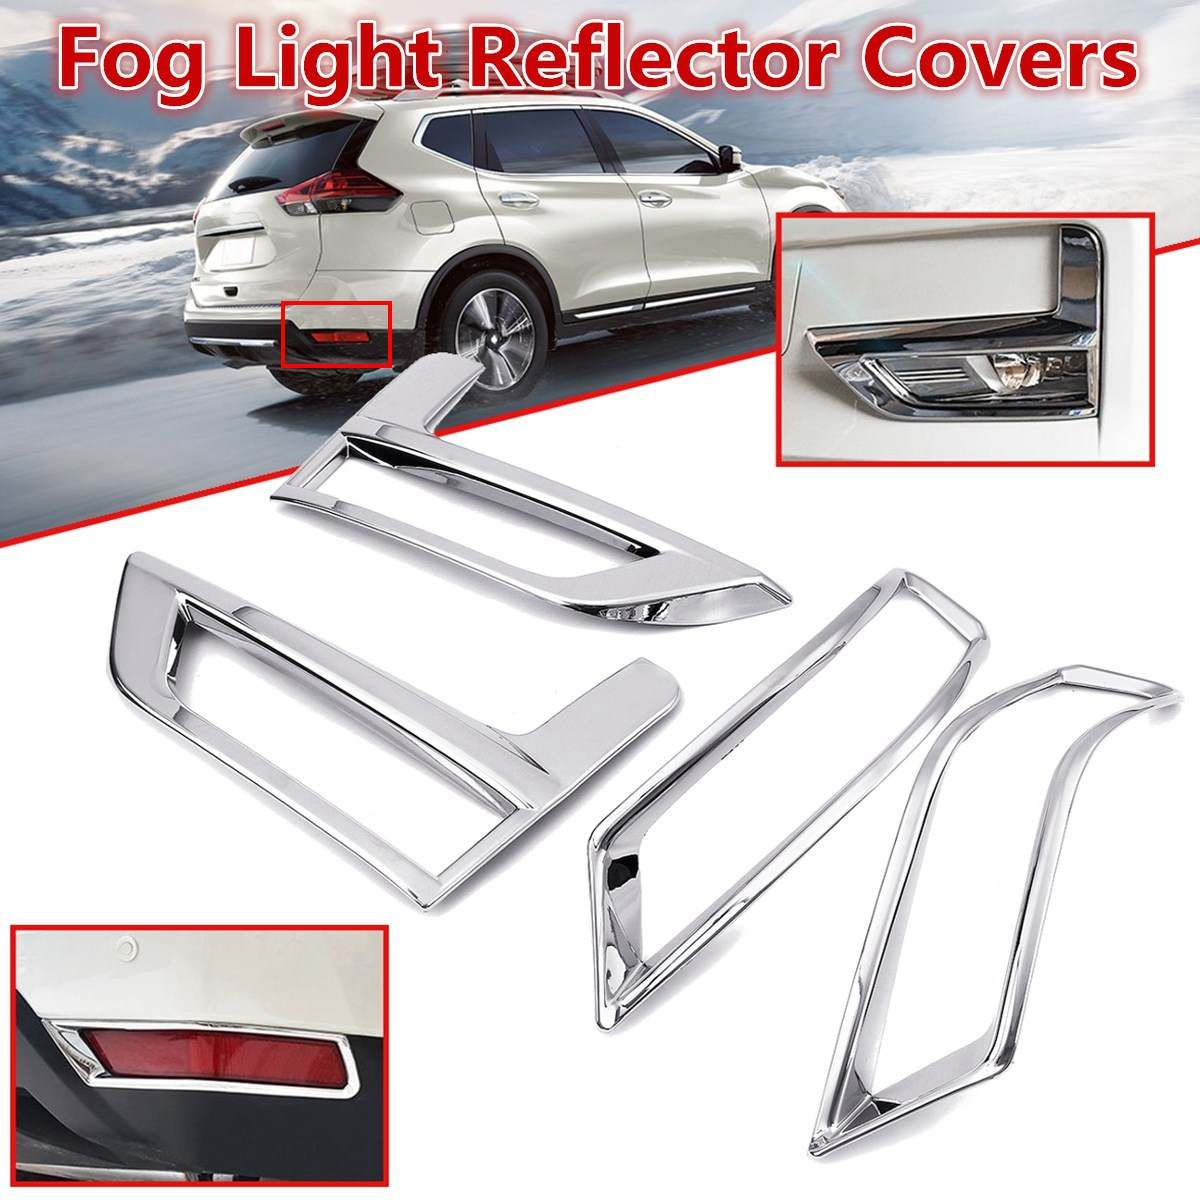 For Nissan Rogue X-Trail T32 Facelift Xtrail 2017 2018 Front + Rear Fog  Light Lamp Cover Chrome Bumper Reflector Accessories